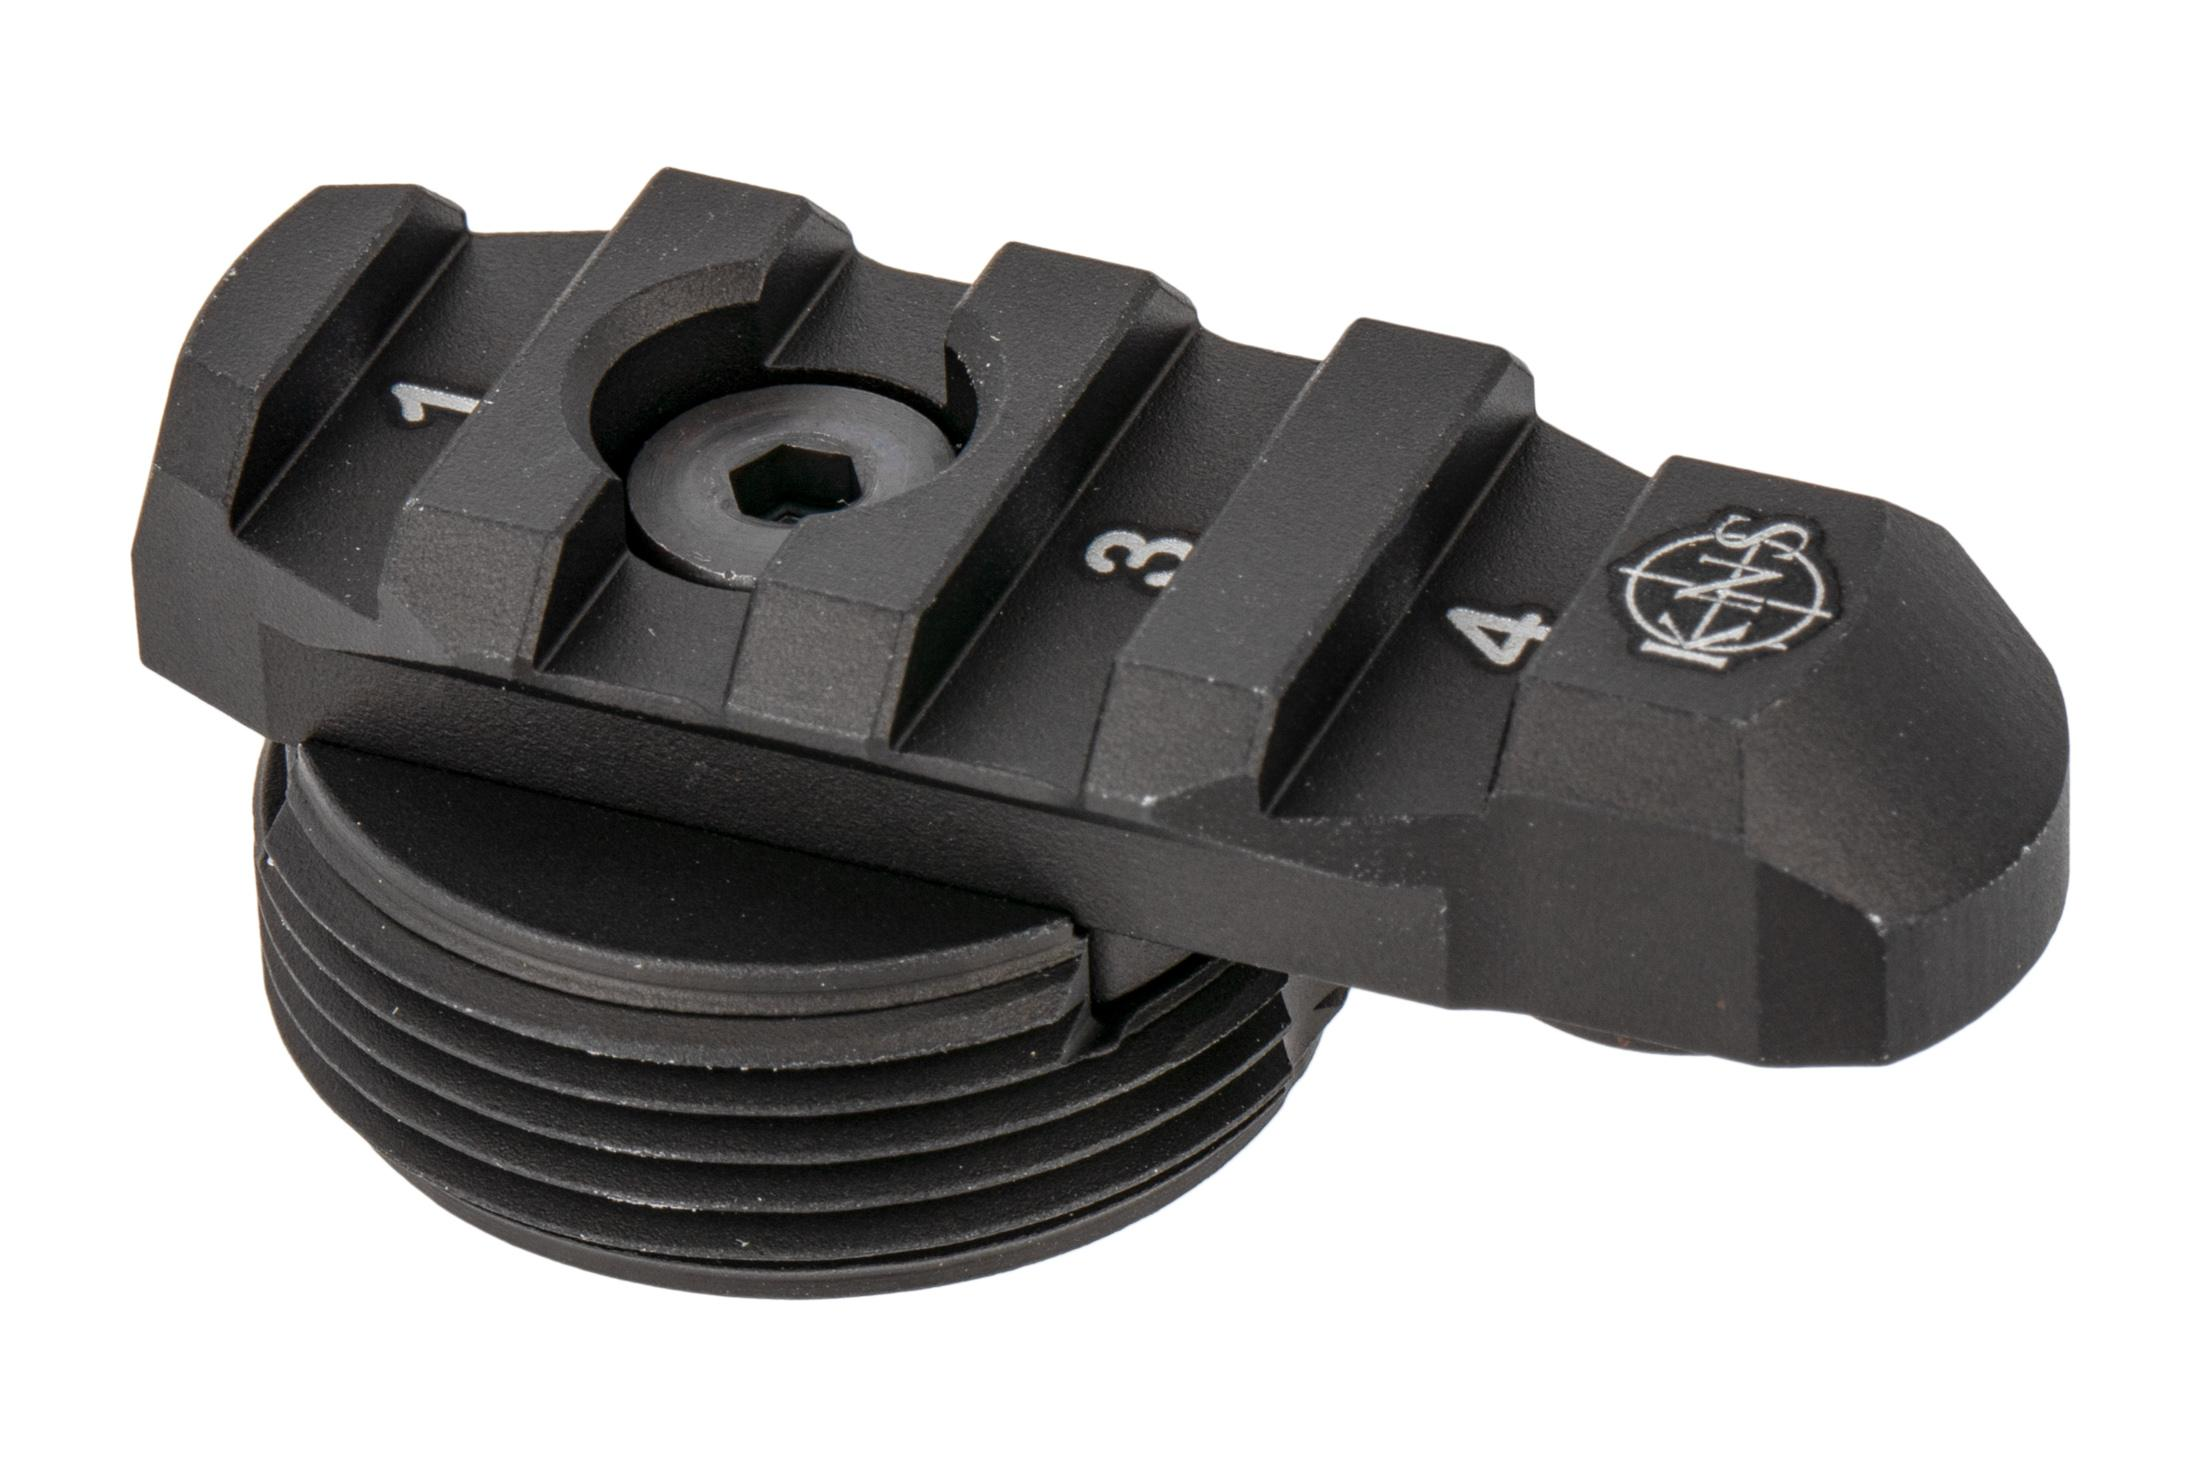 KNS Precision AR/MCX Stock adapter is flangeless for non-AR15 rifles that do not require a retainer for the takedown pin spring.